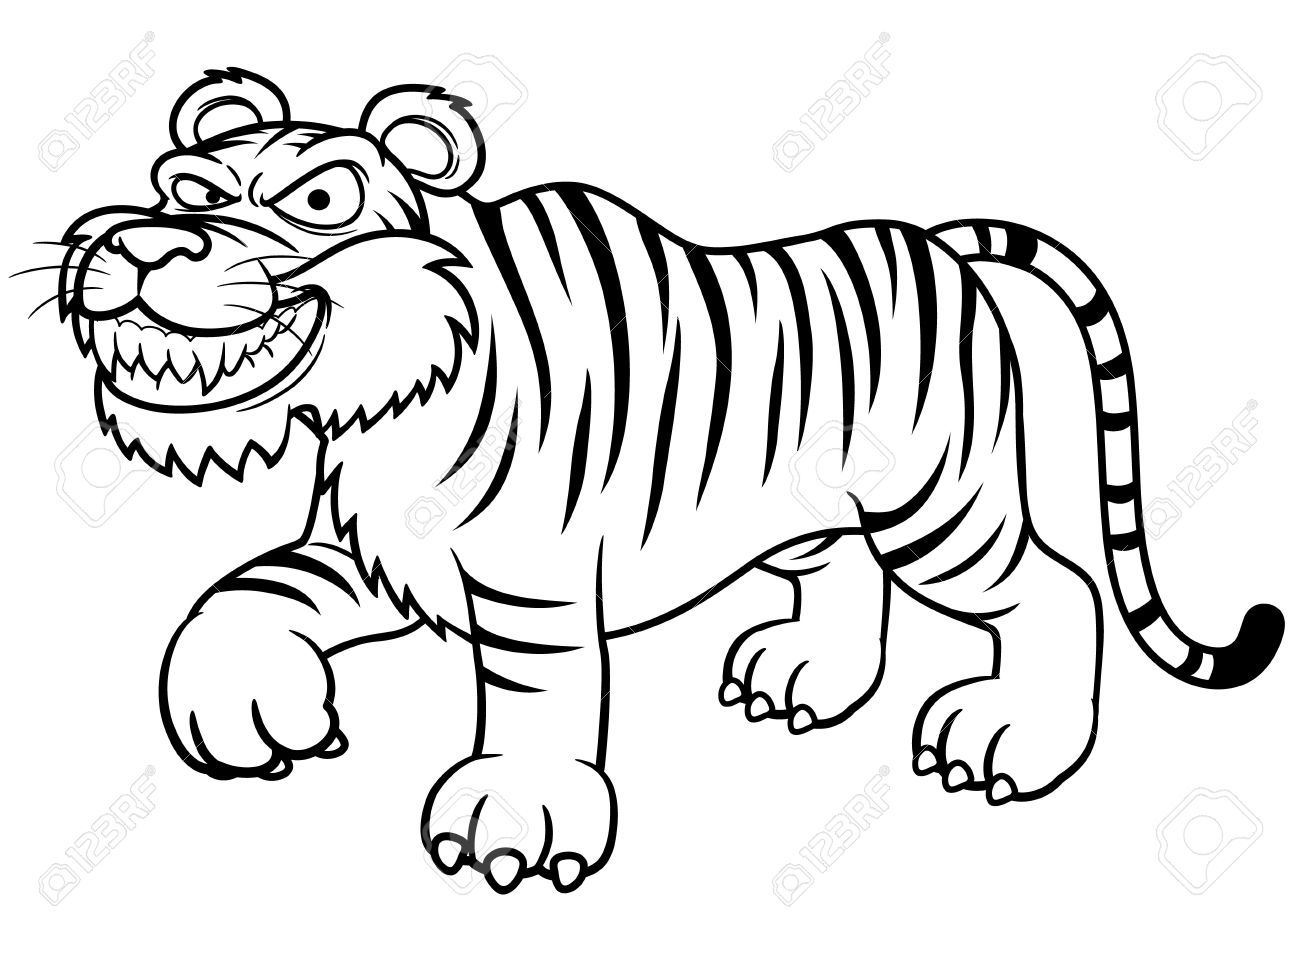 tiger with creepy smile coloring  play free coloring game